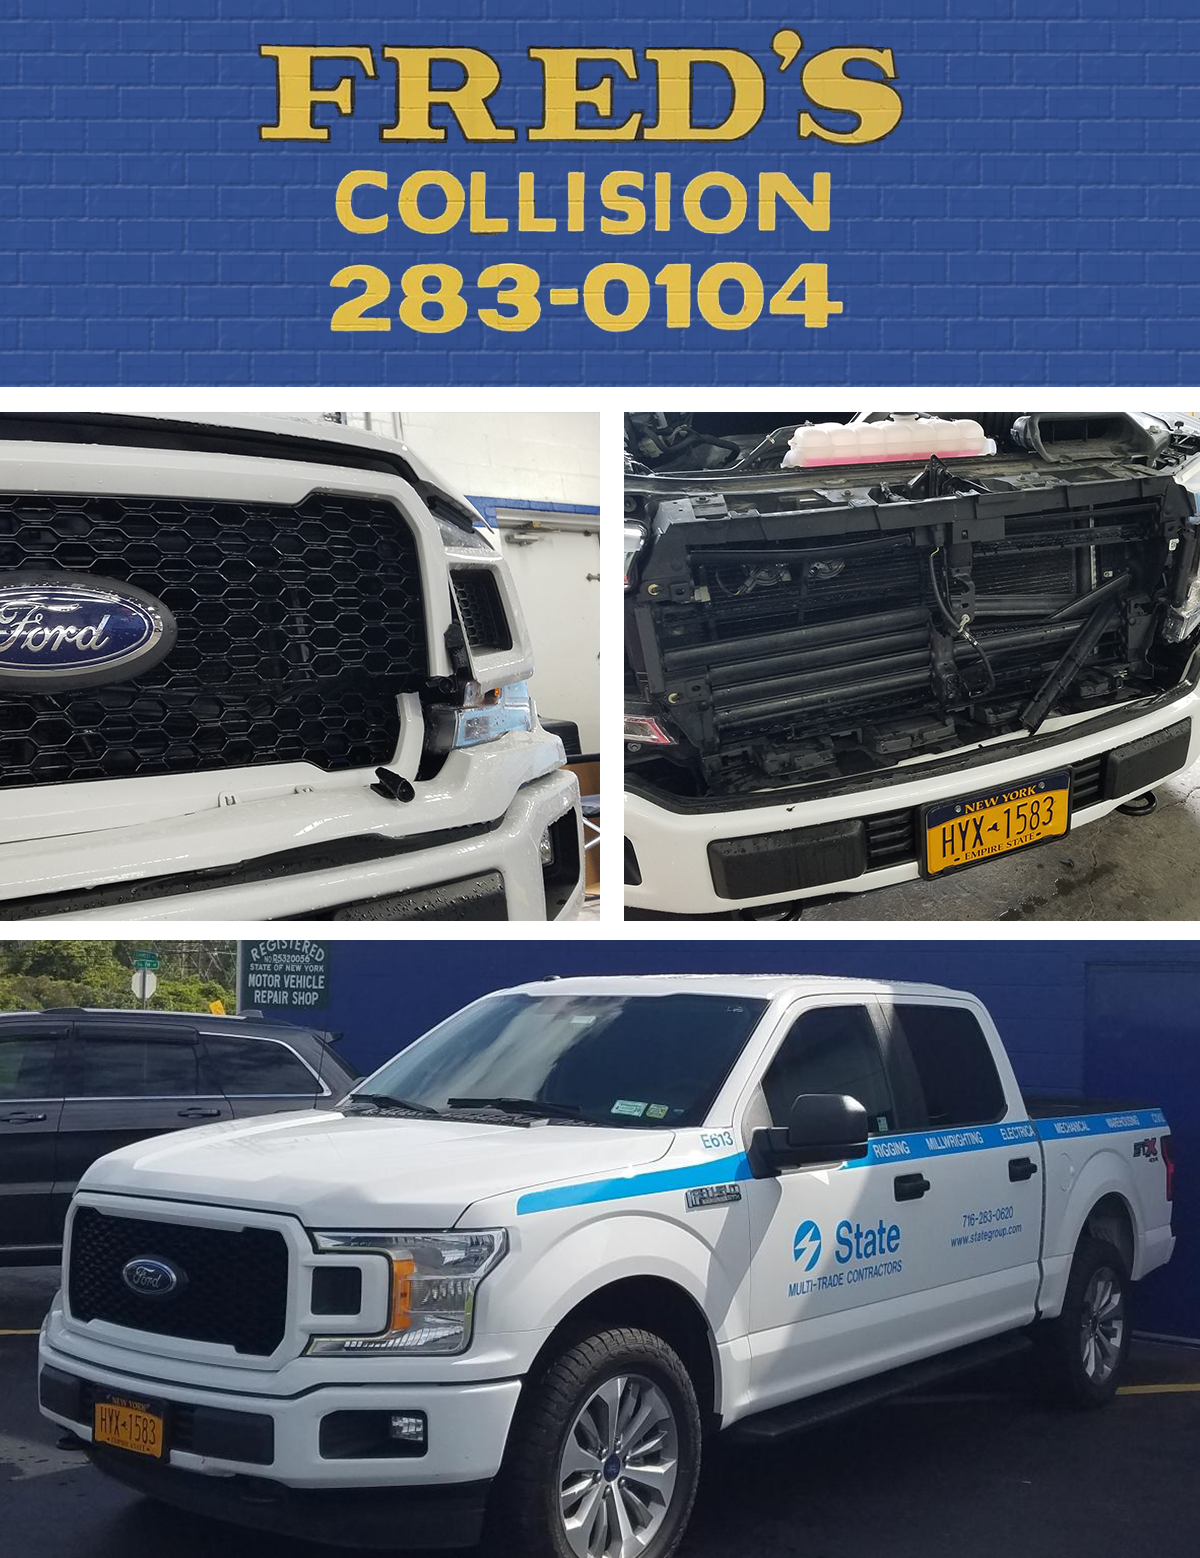 f150_stategroup_collage.png